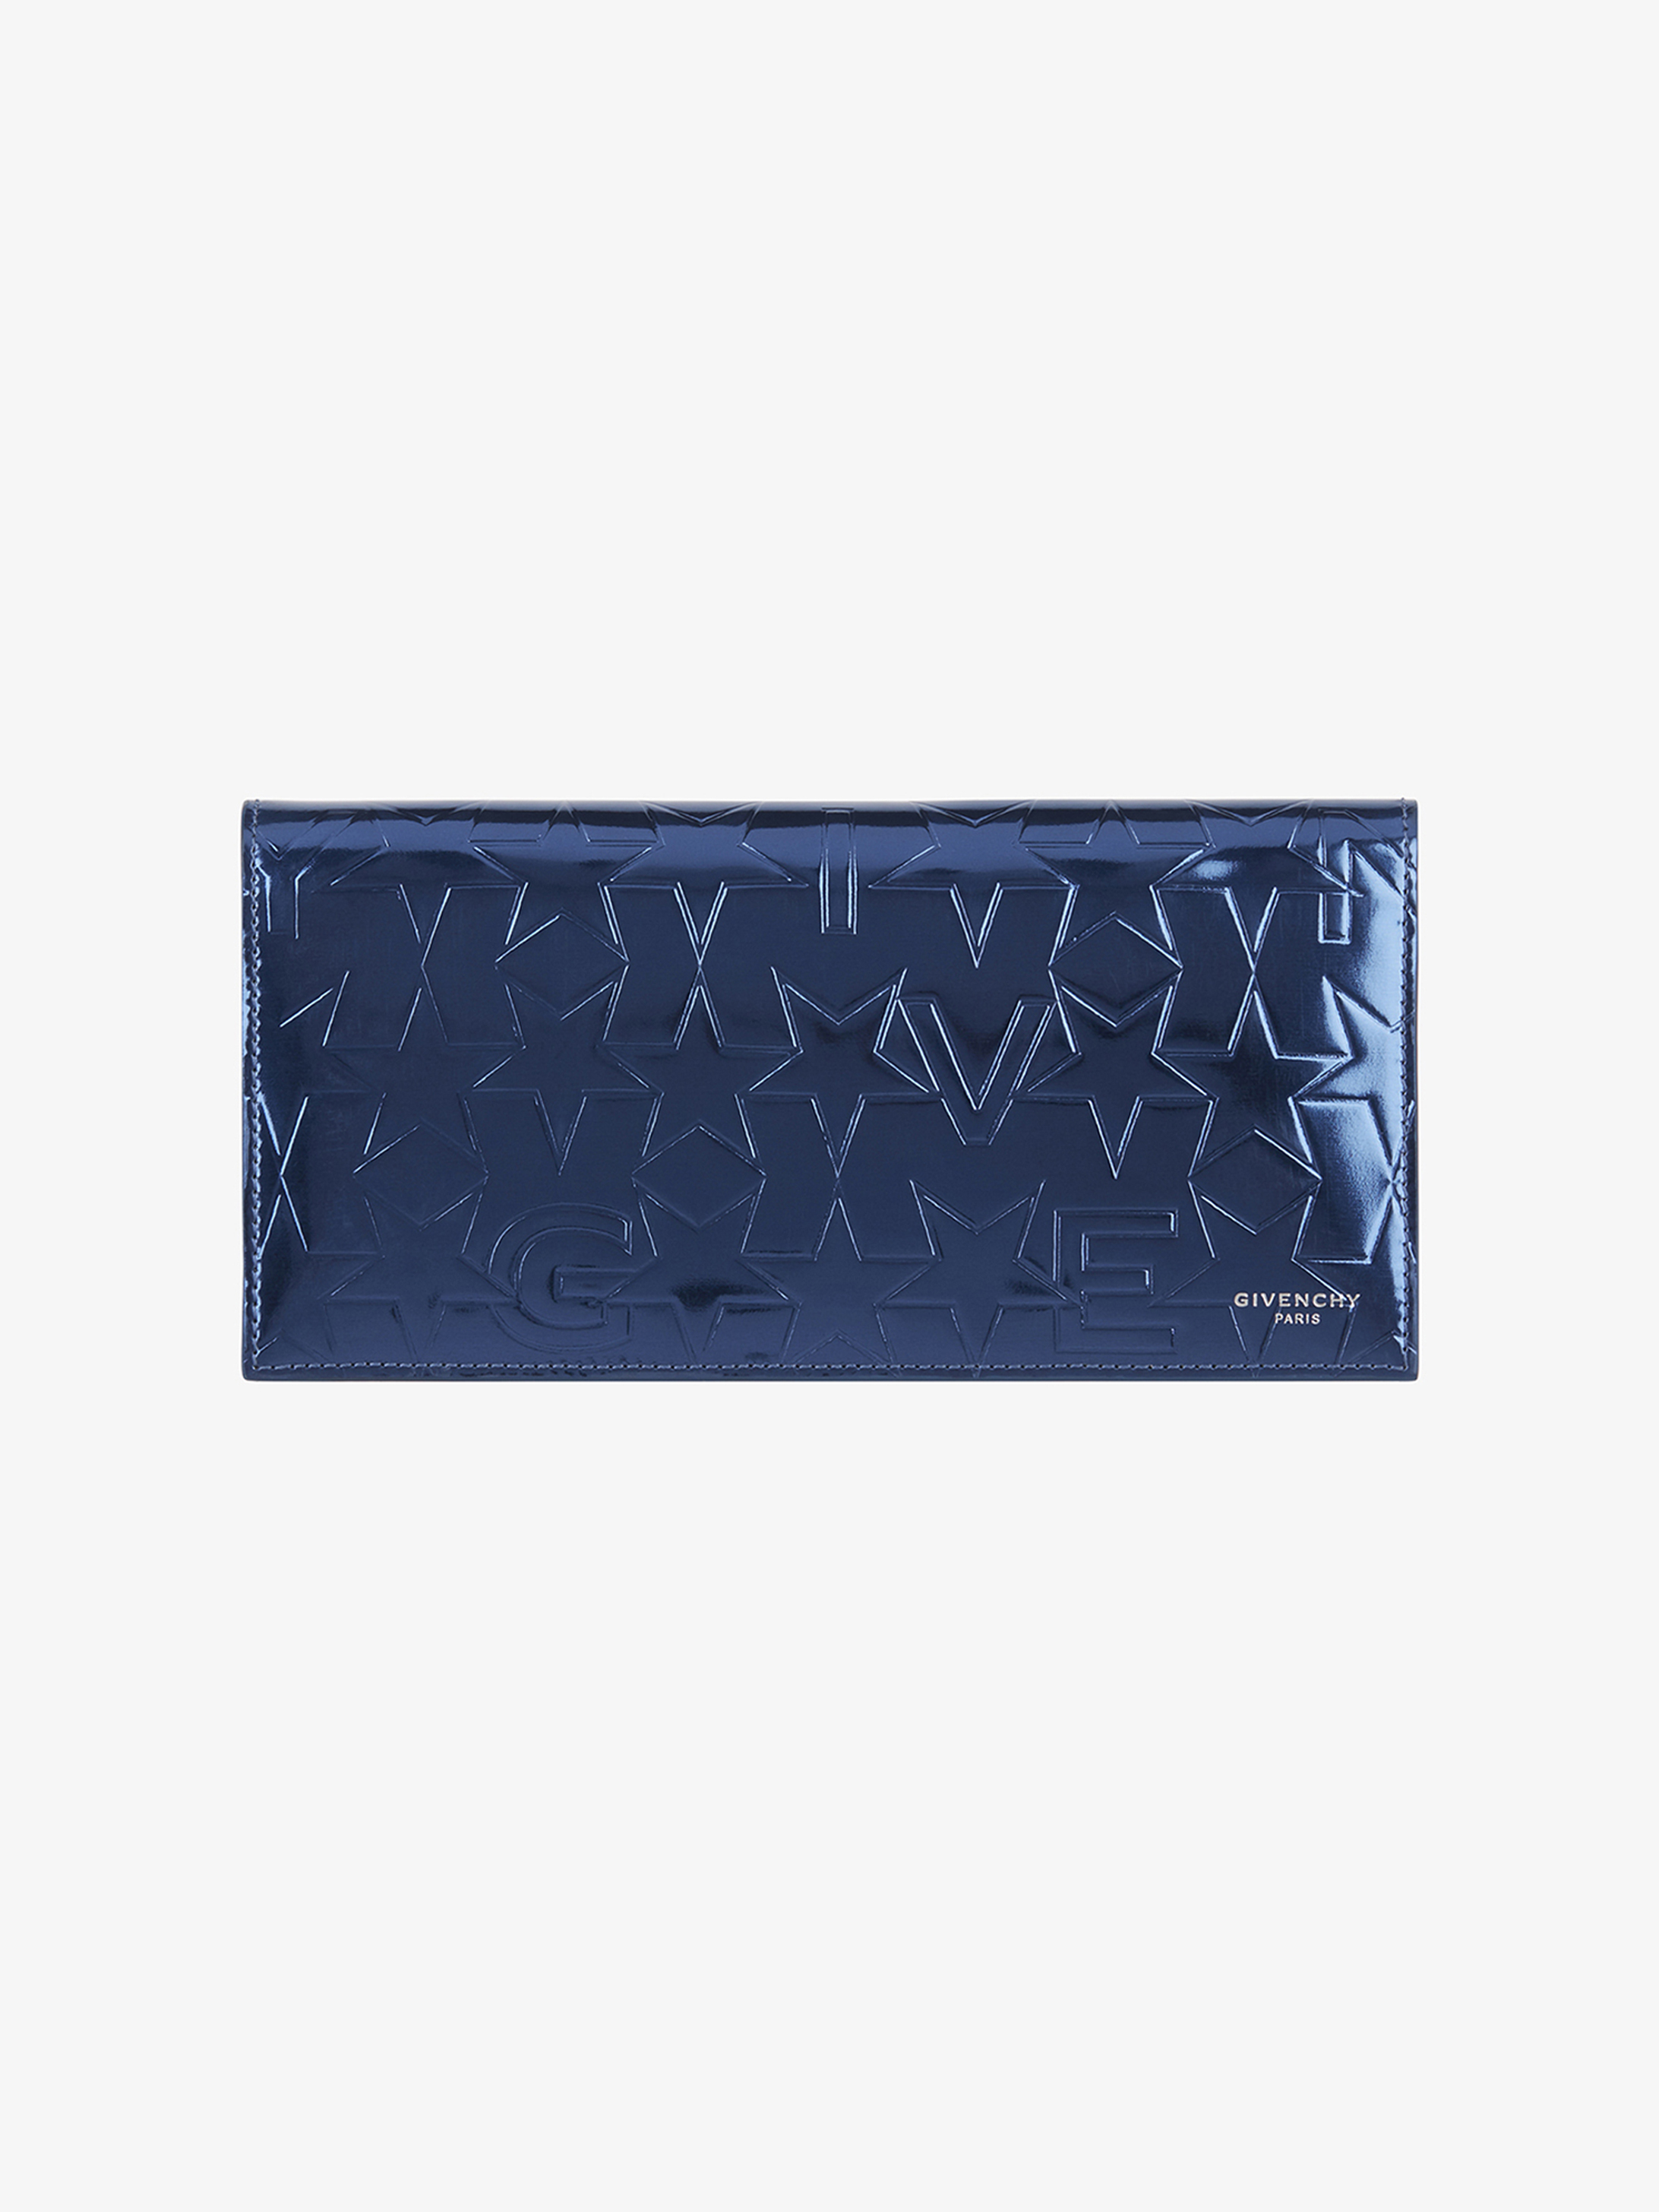 GIVENCHY & Stars embossed wallet in leather